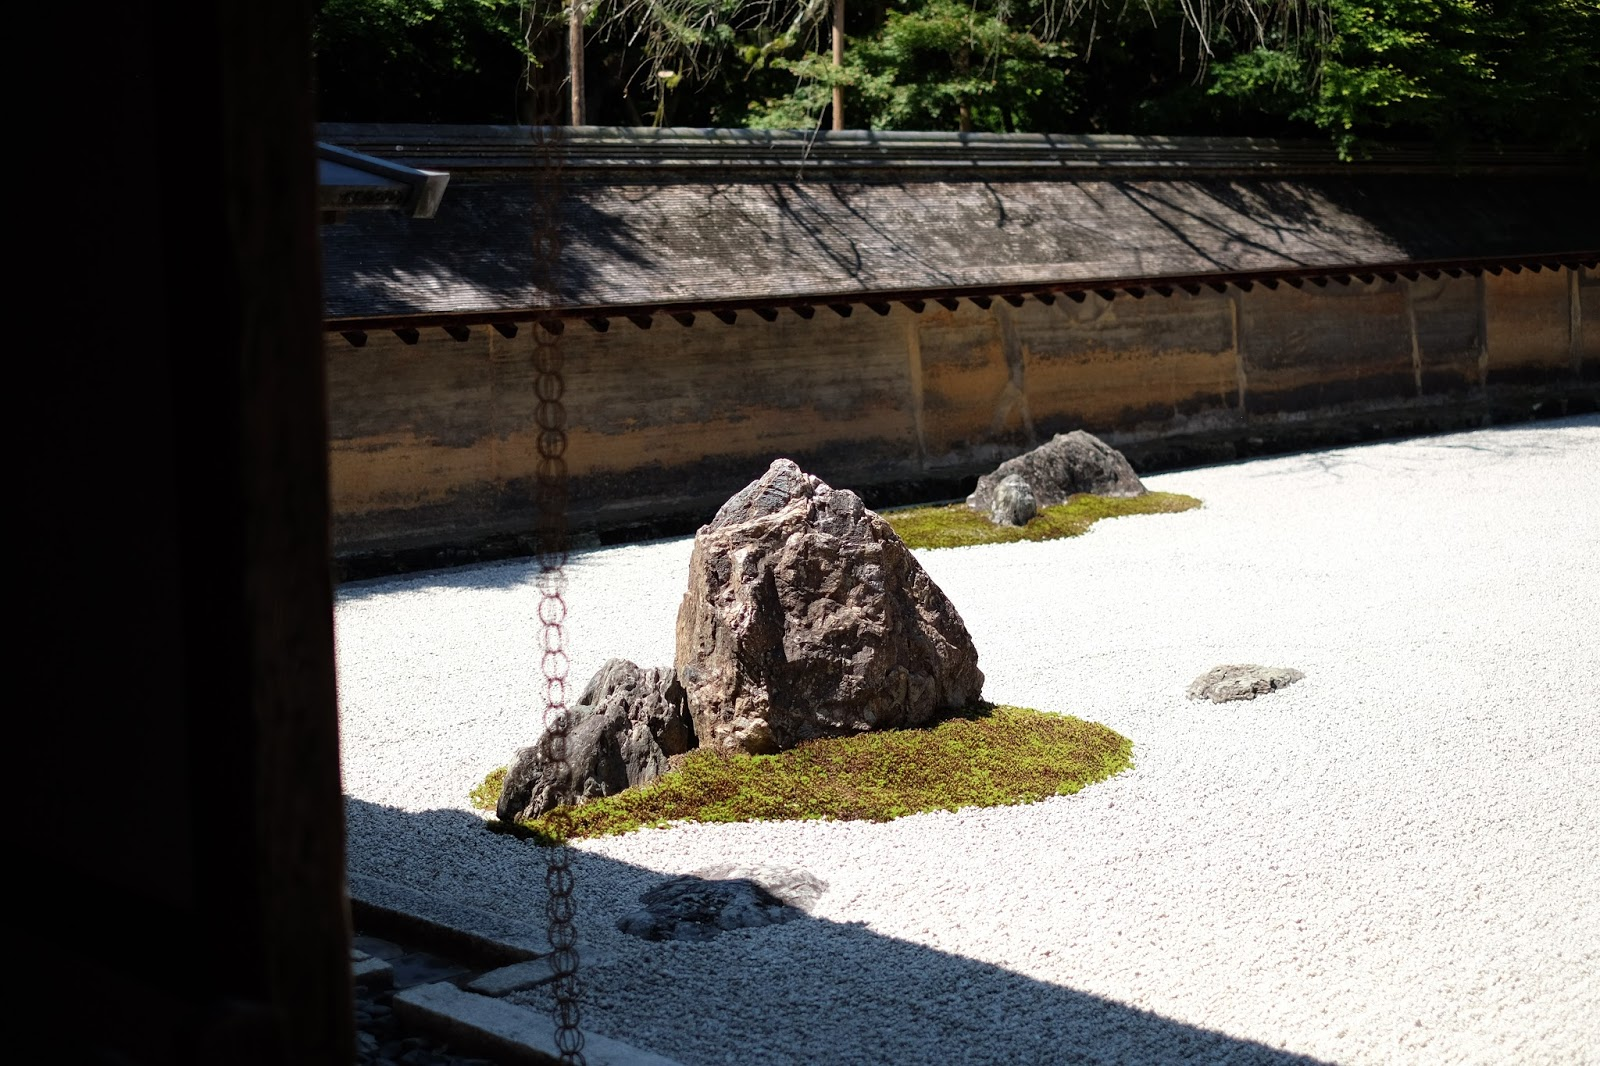 ryoan-ji kyoto japan rock garden